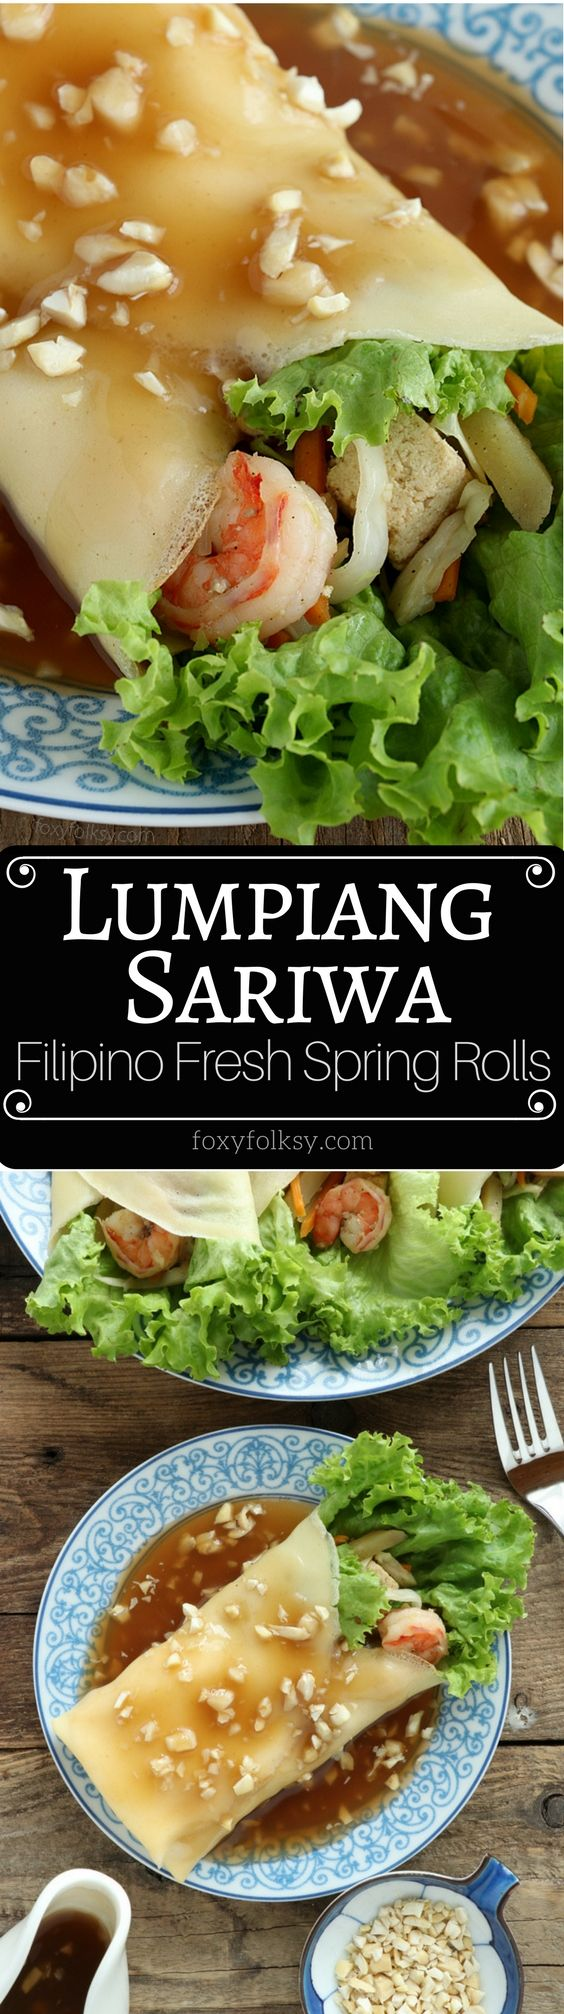 Lumpiang Sariwa is a Filipino Spring Rolls that is filled with vegetables, wrapped in a crepe-like wrapper and covered with a special sweet savory sauce.